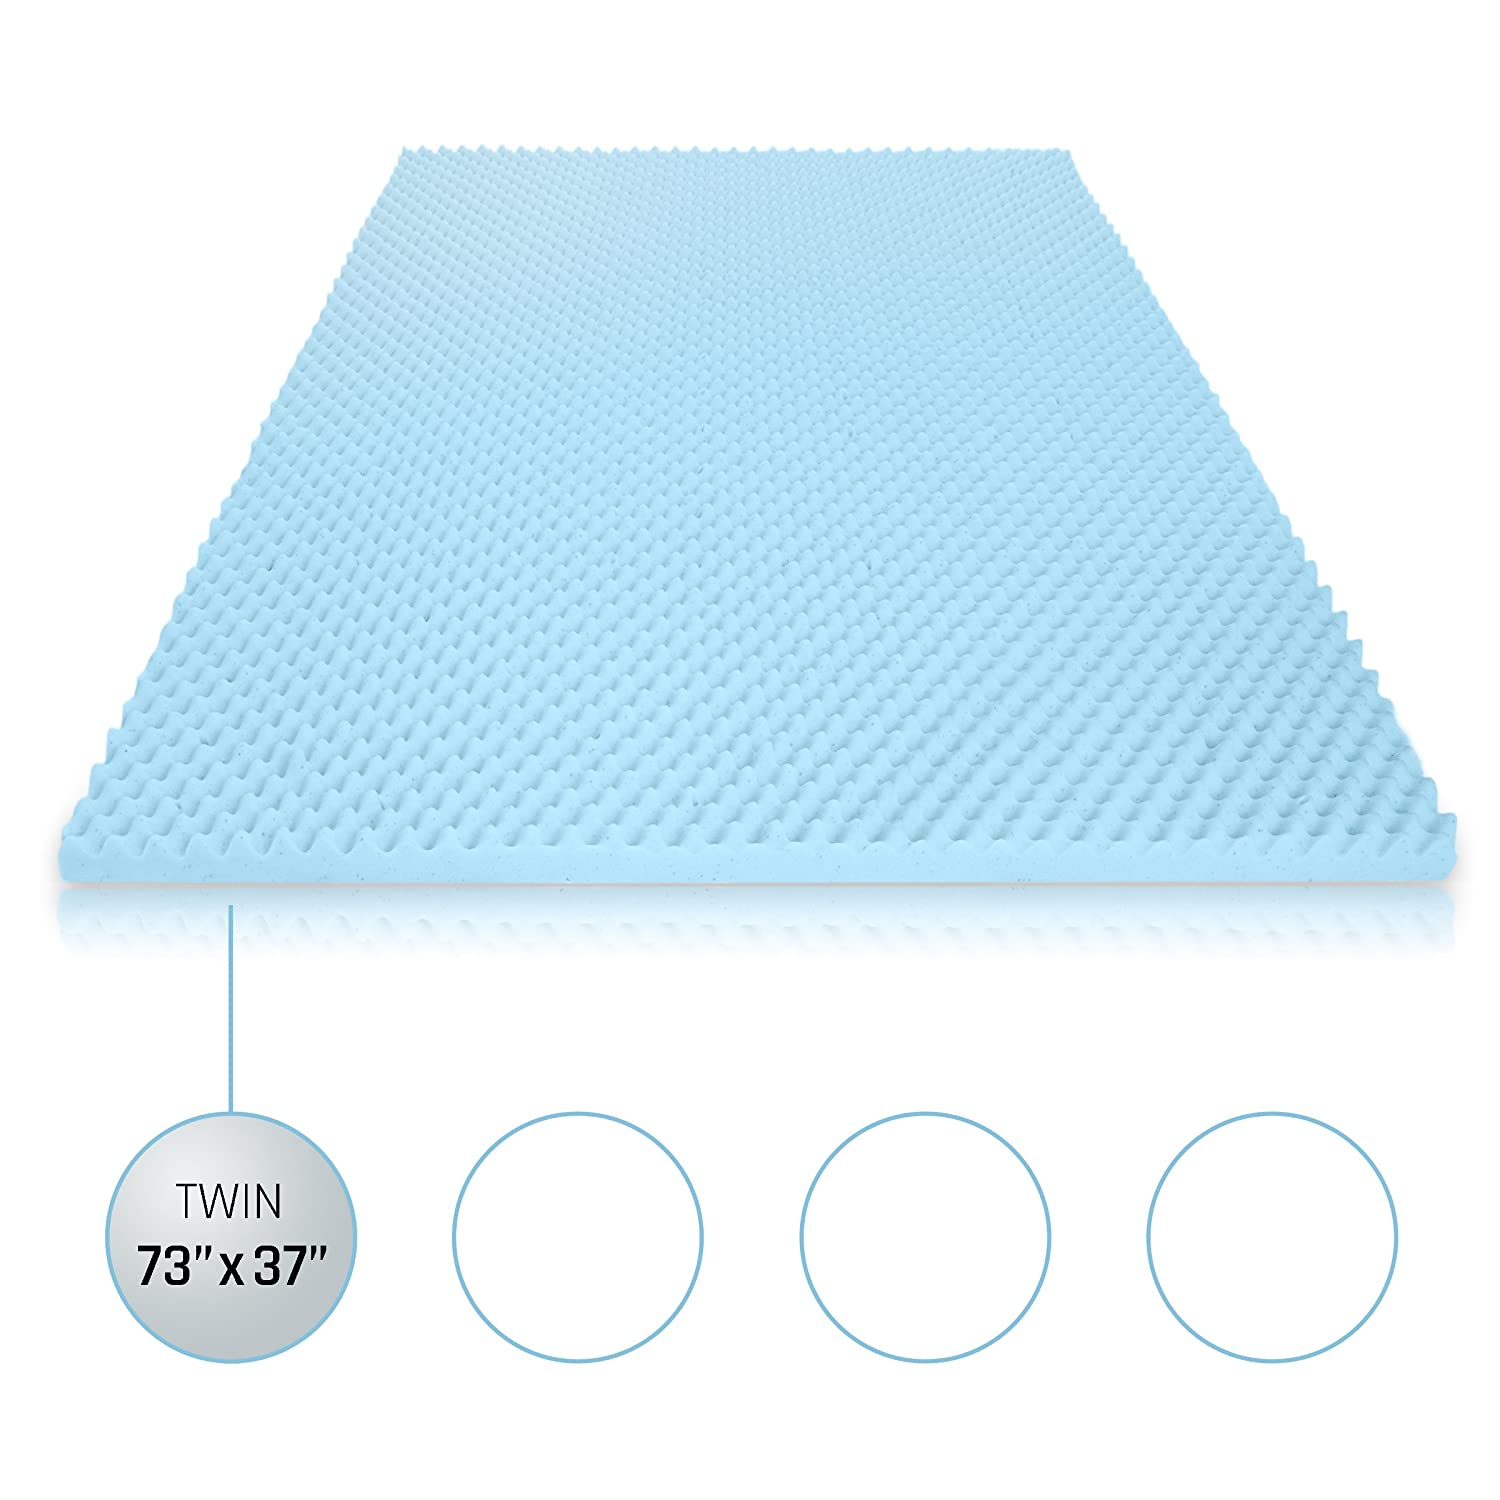 egg crate gel memory foam mattress topper twin mattress pad provides great pressure relief gel infusion contributes to a cooler night sleep twin